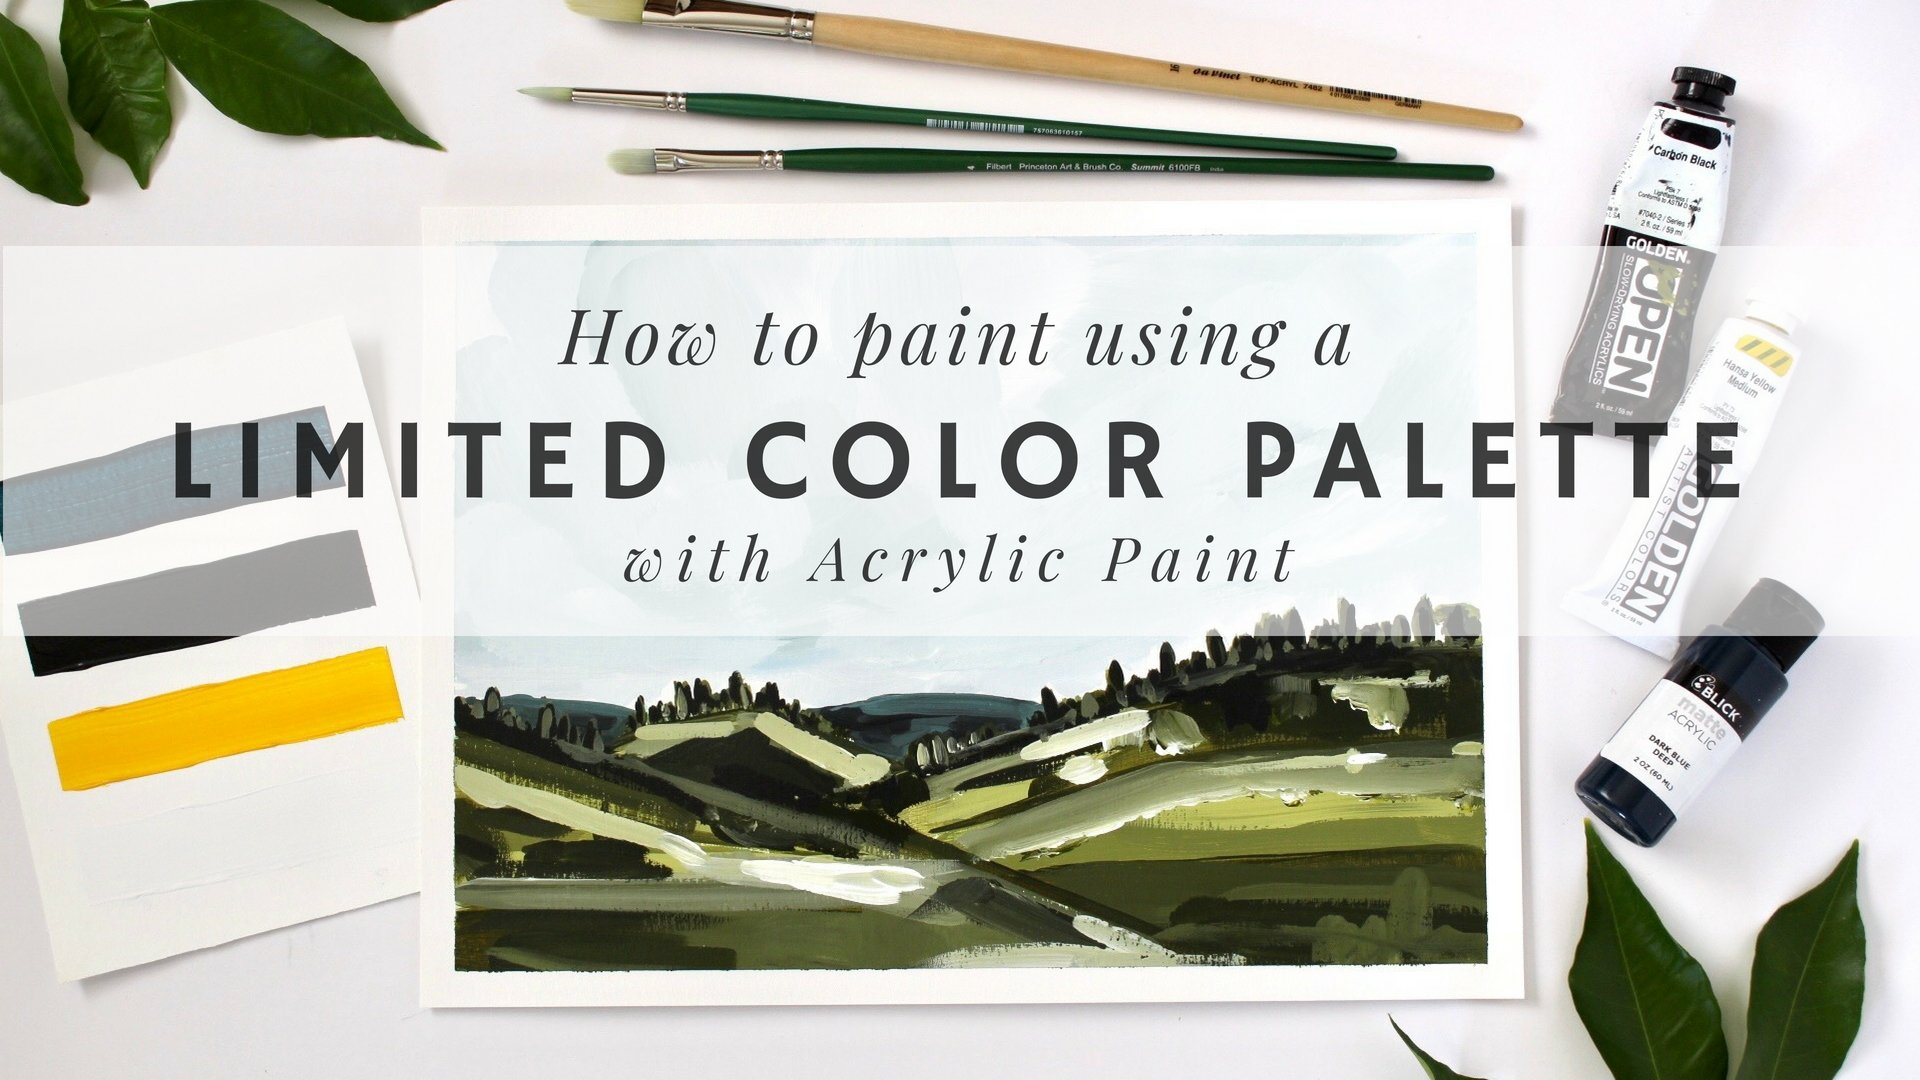 Acrylic Painting: How To Paint Using A Limited Color Palette